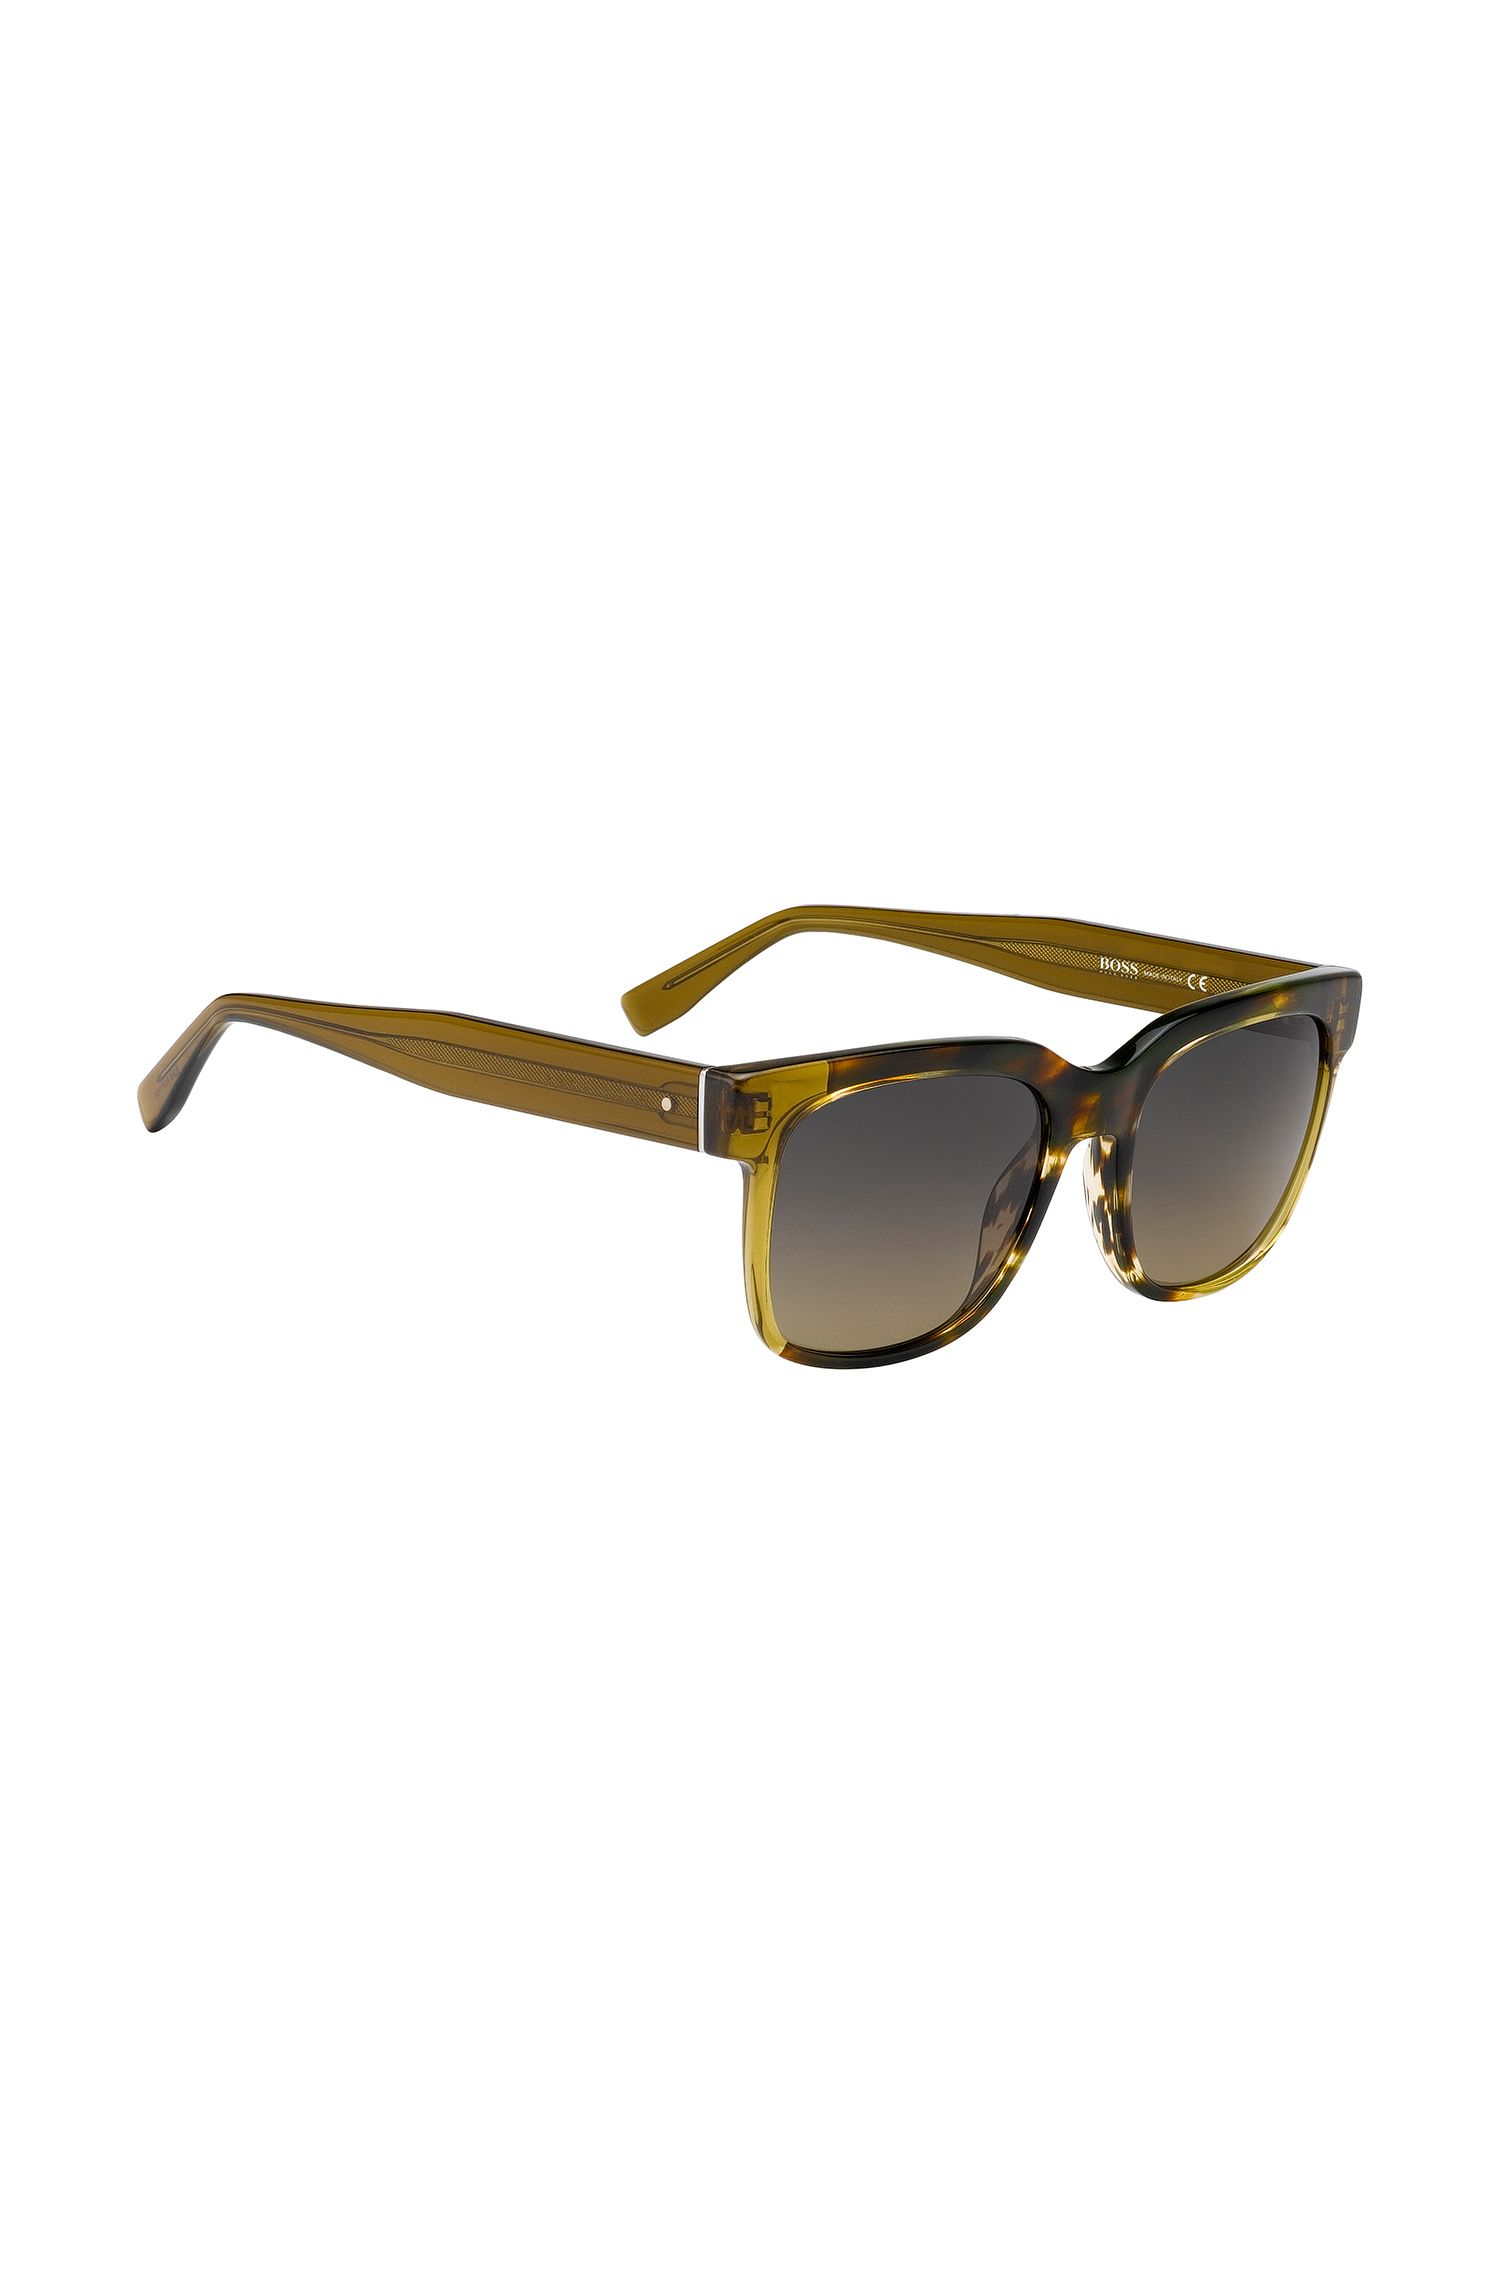 'BOSS 0735S' | Gradient Lens Acetate Sunglasses